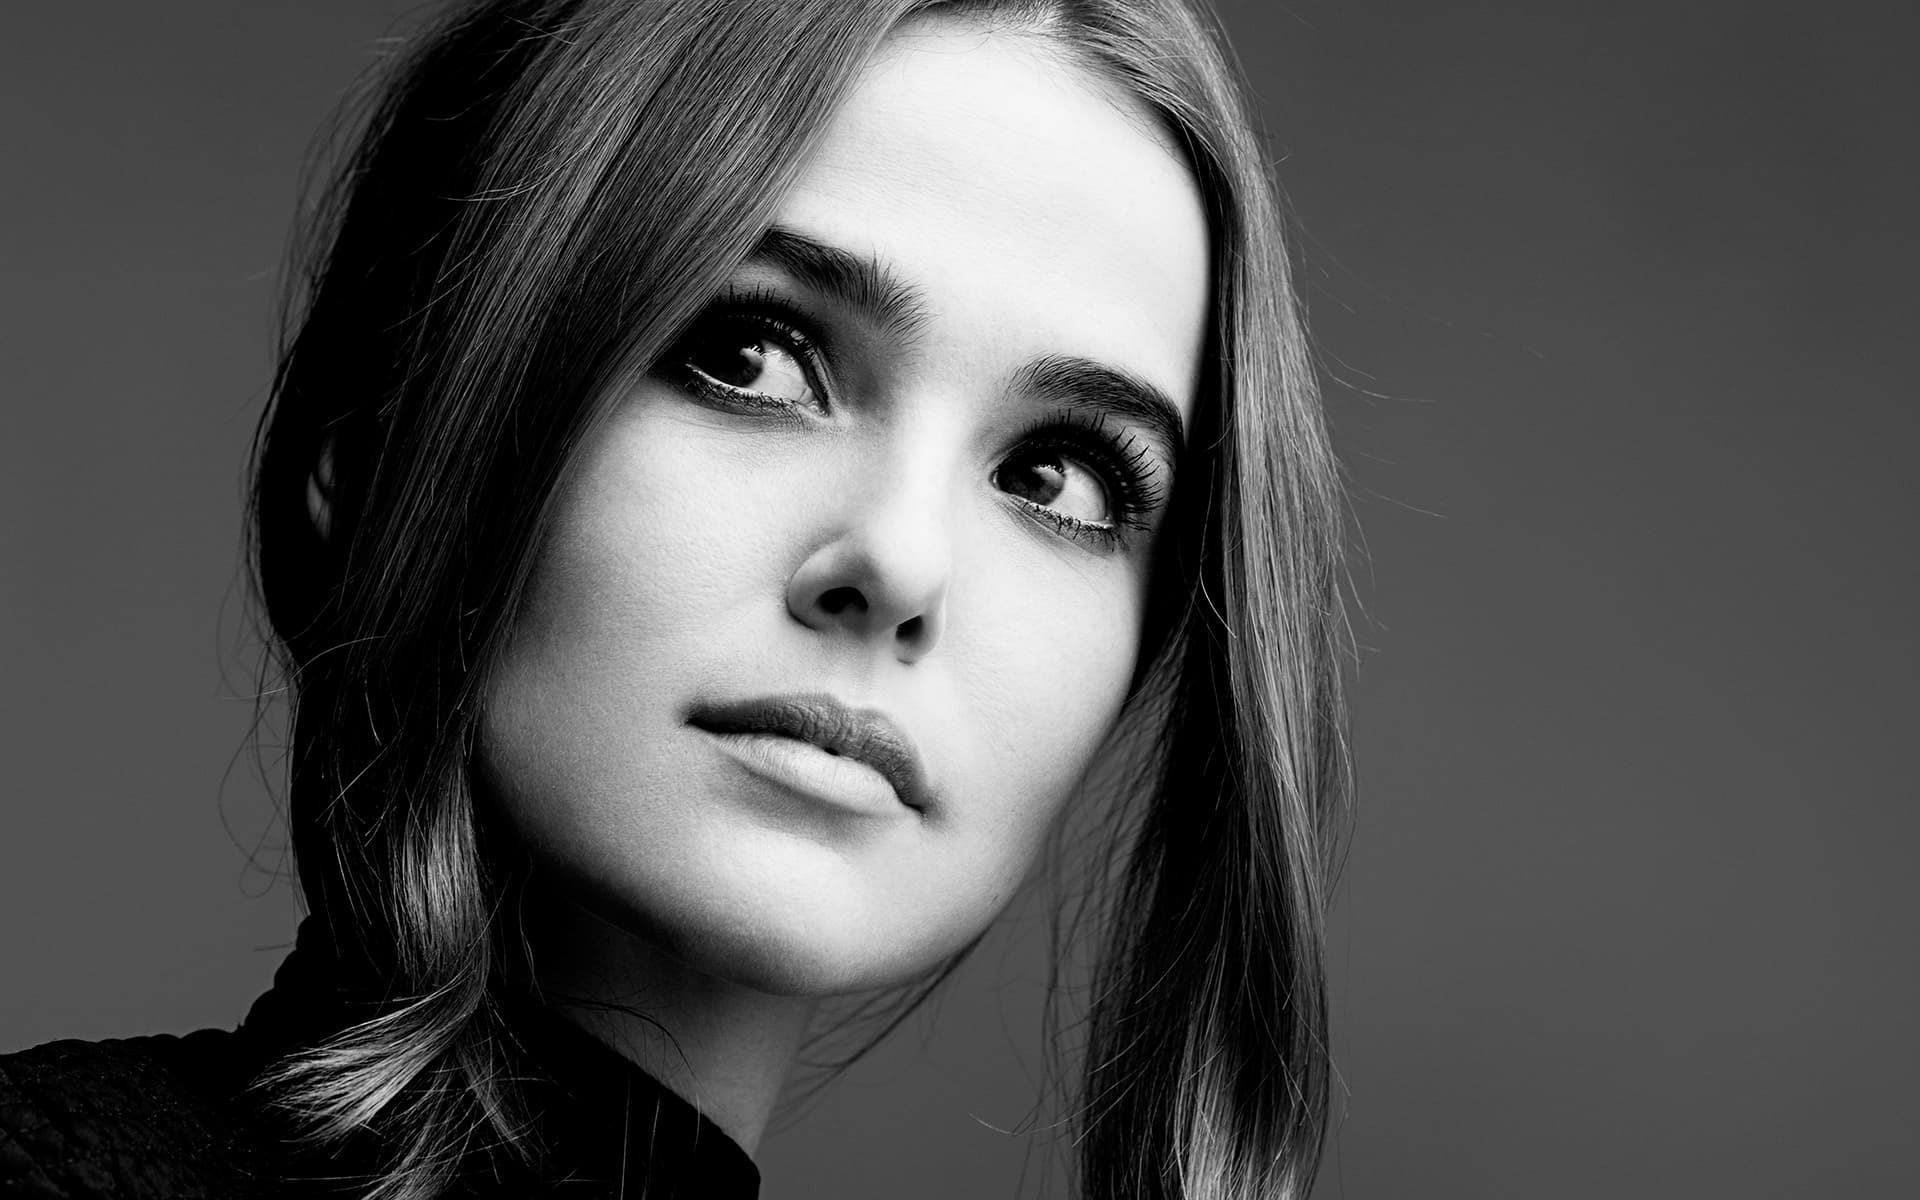 5 Zoey Deutch Black And White Background Wallpapers High Quality